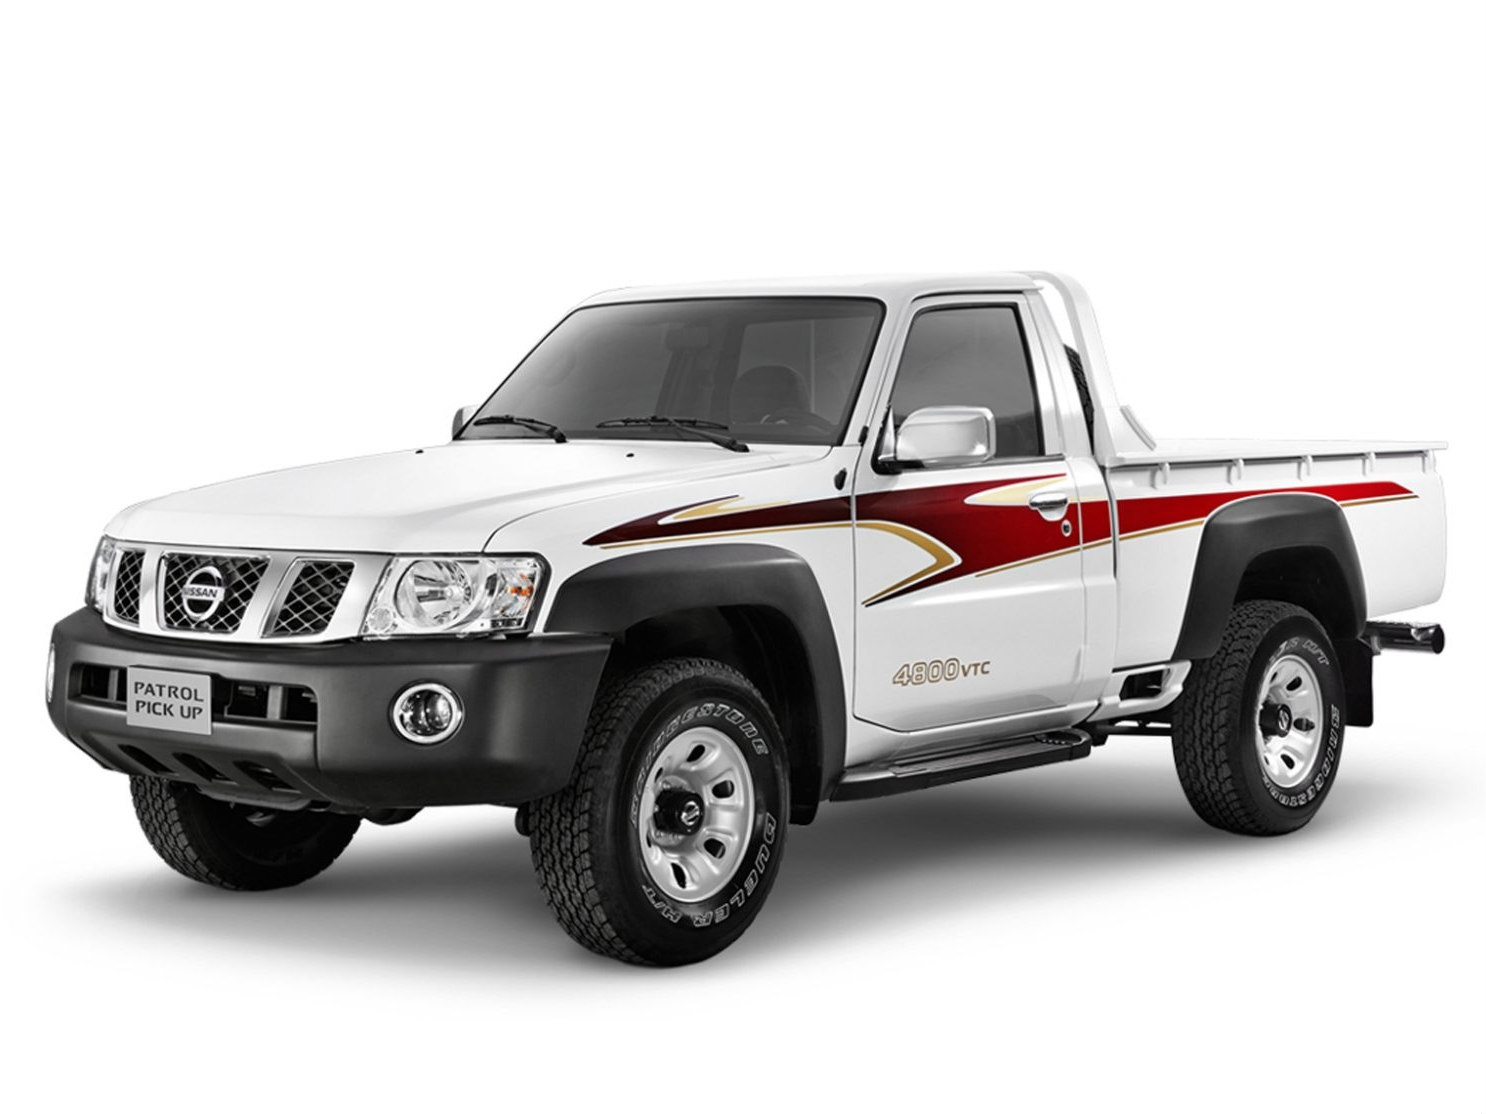 nissan patrol pick up price in oman new nissan patrol pick up